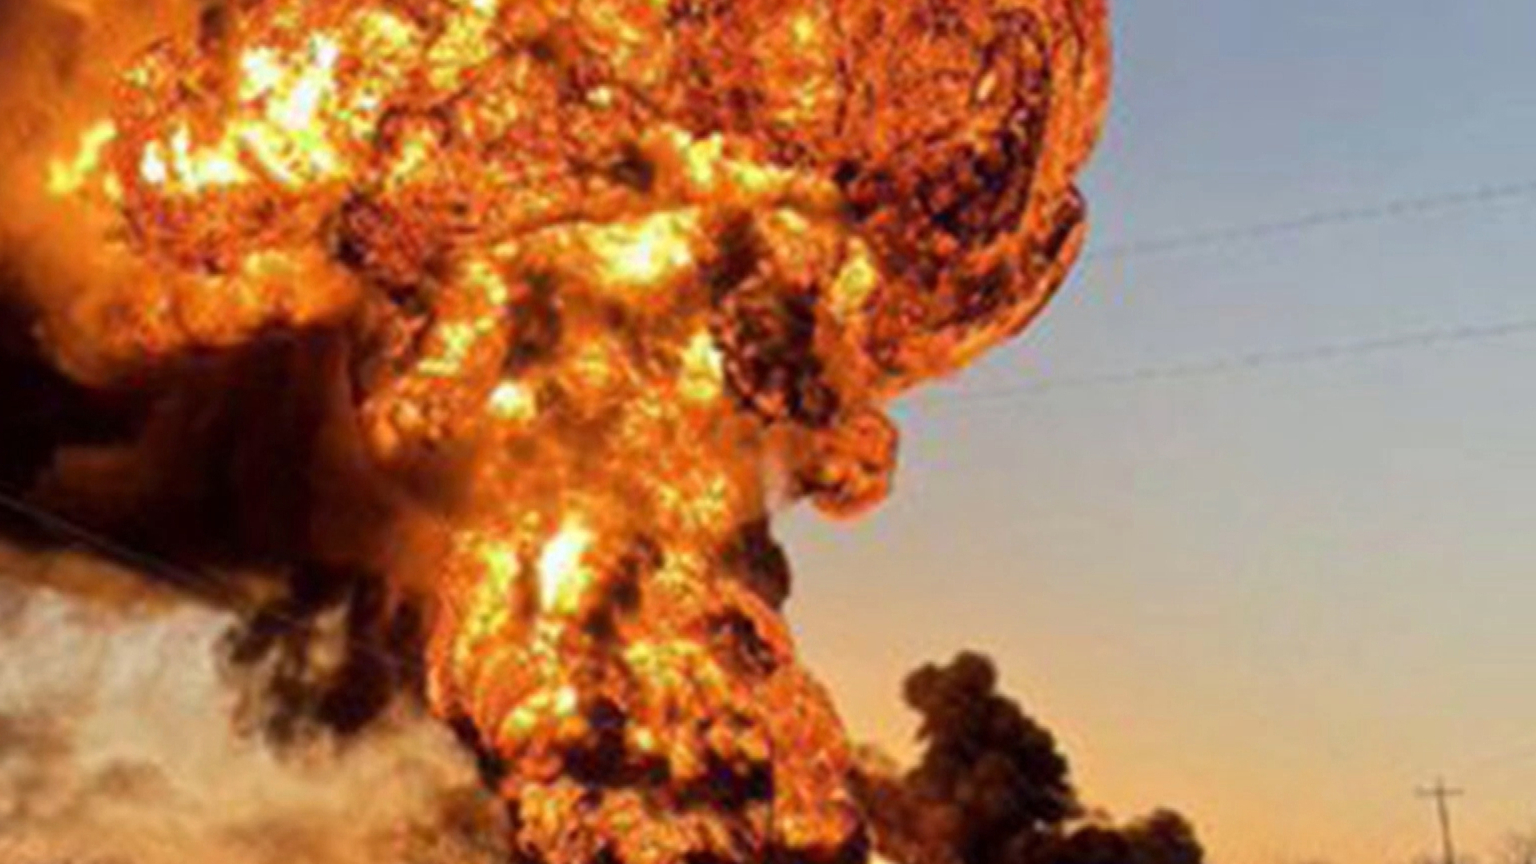 Truck collides with train in Texas, causing large explosion